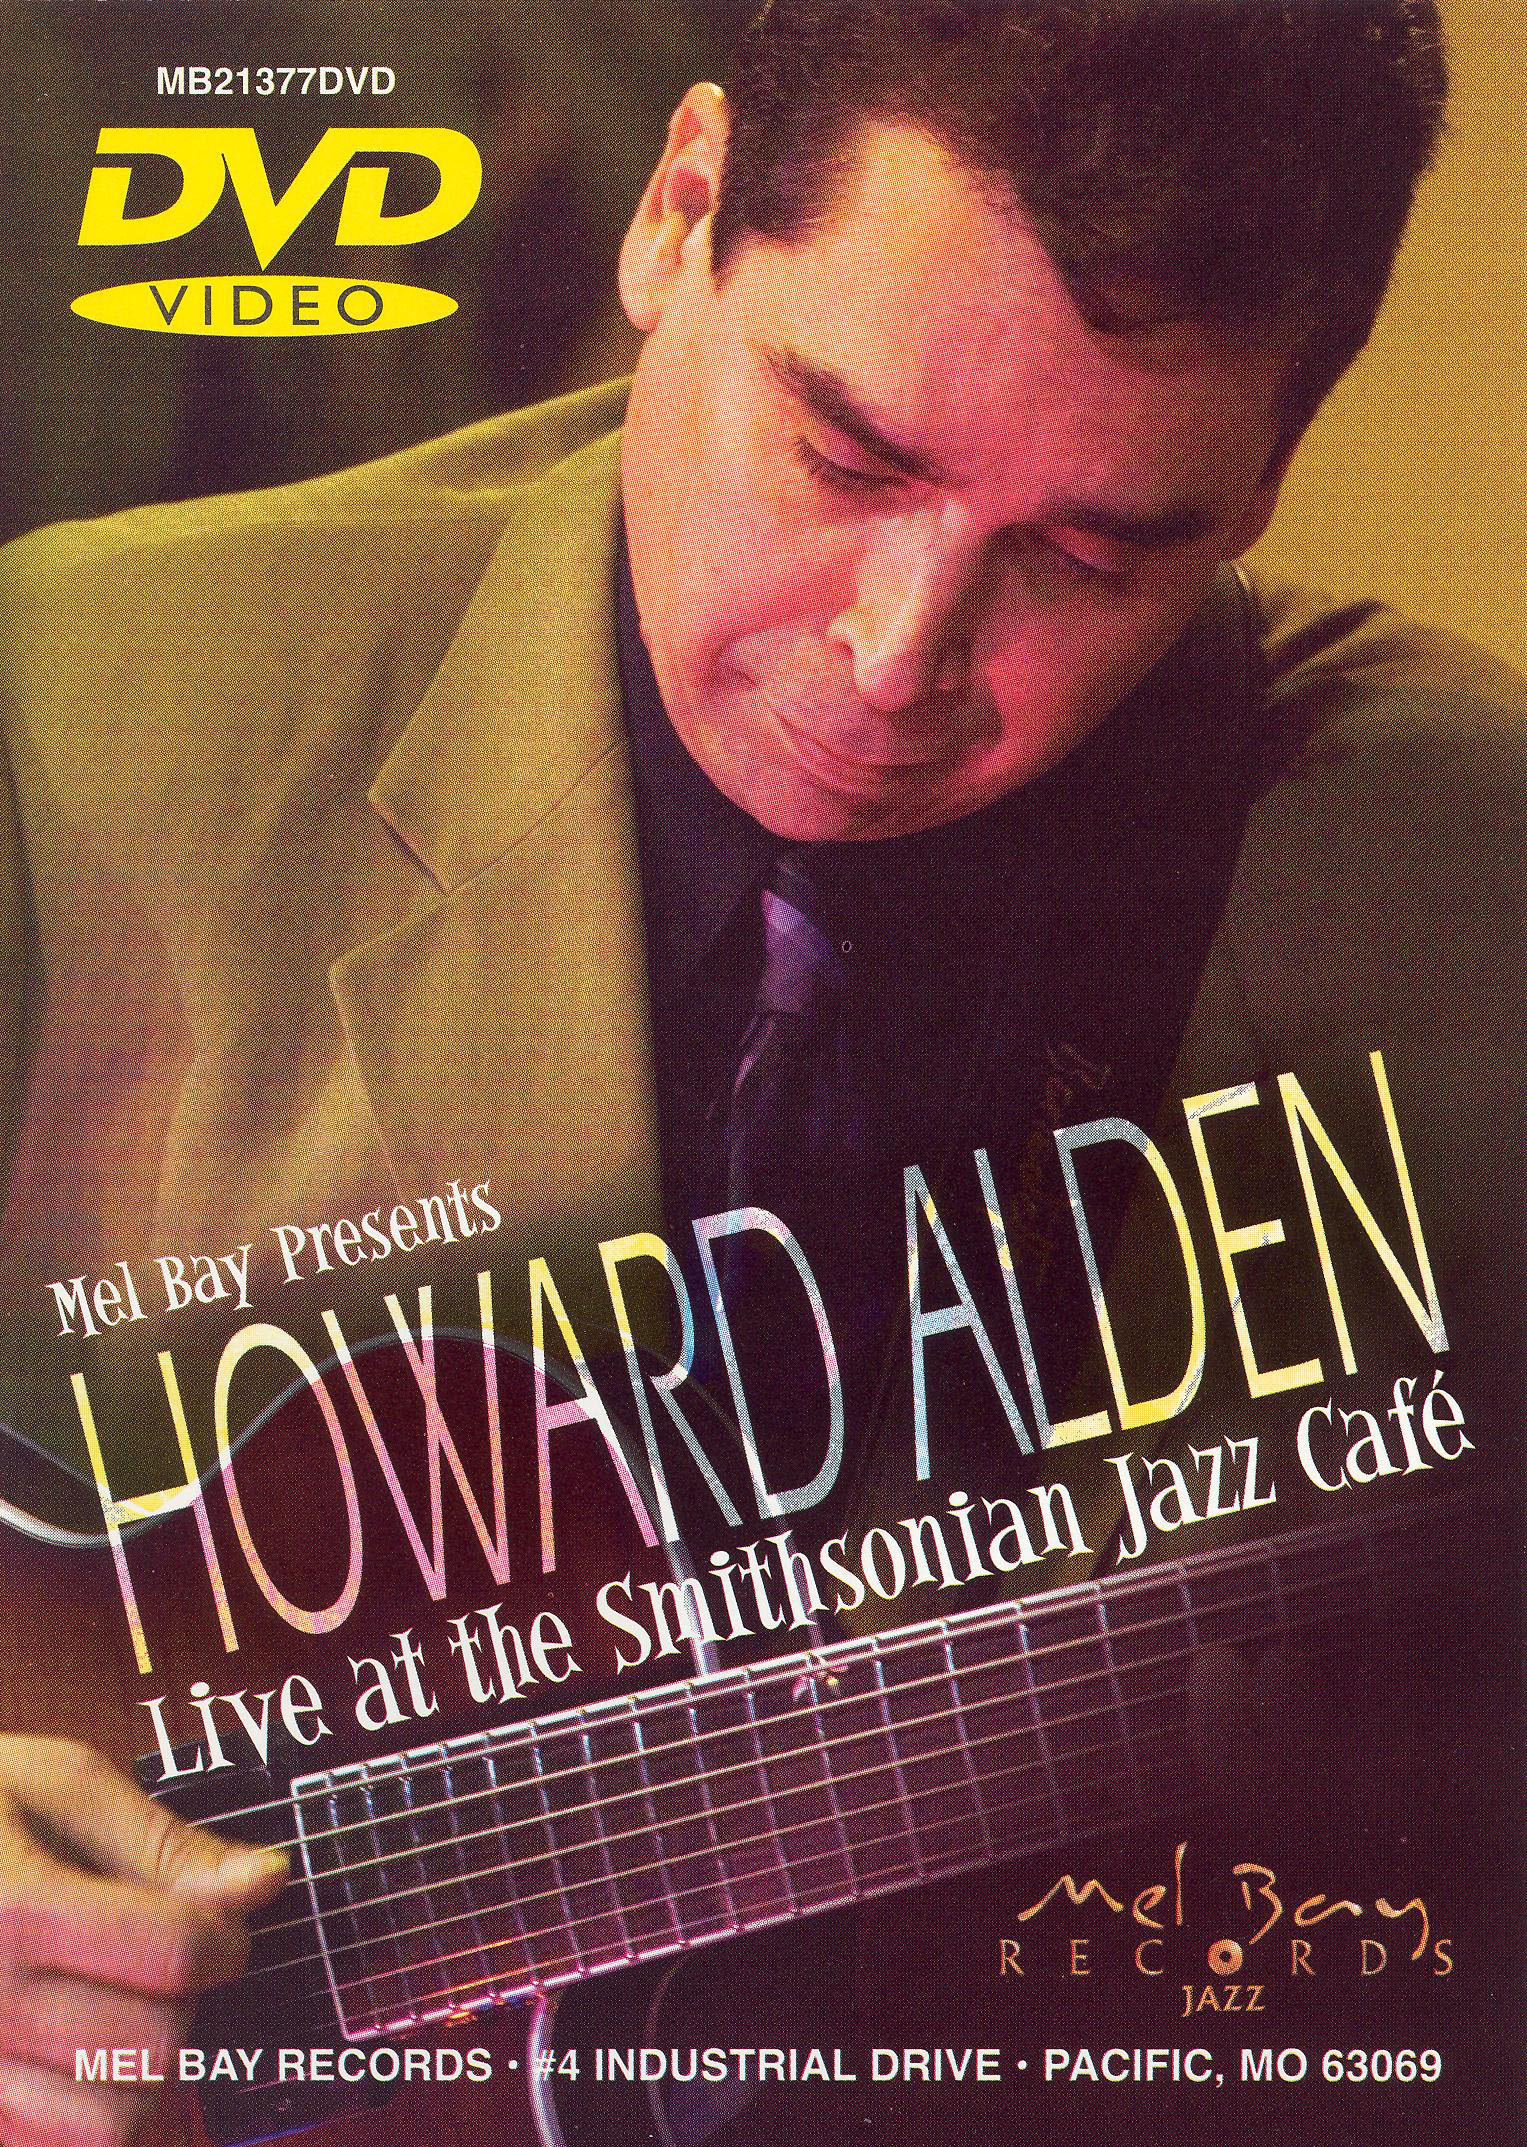 Howard Alden: Live at the Smithsonian Jazz Cafe